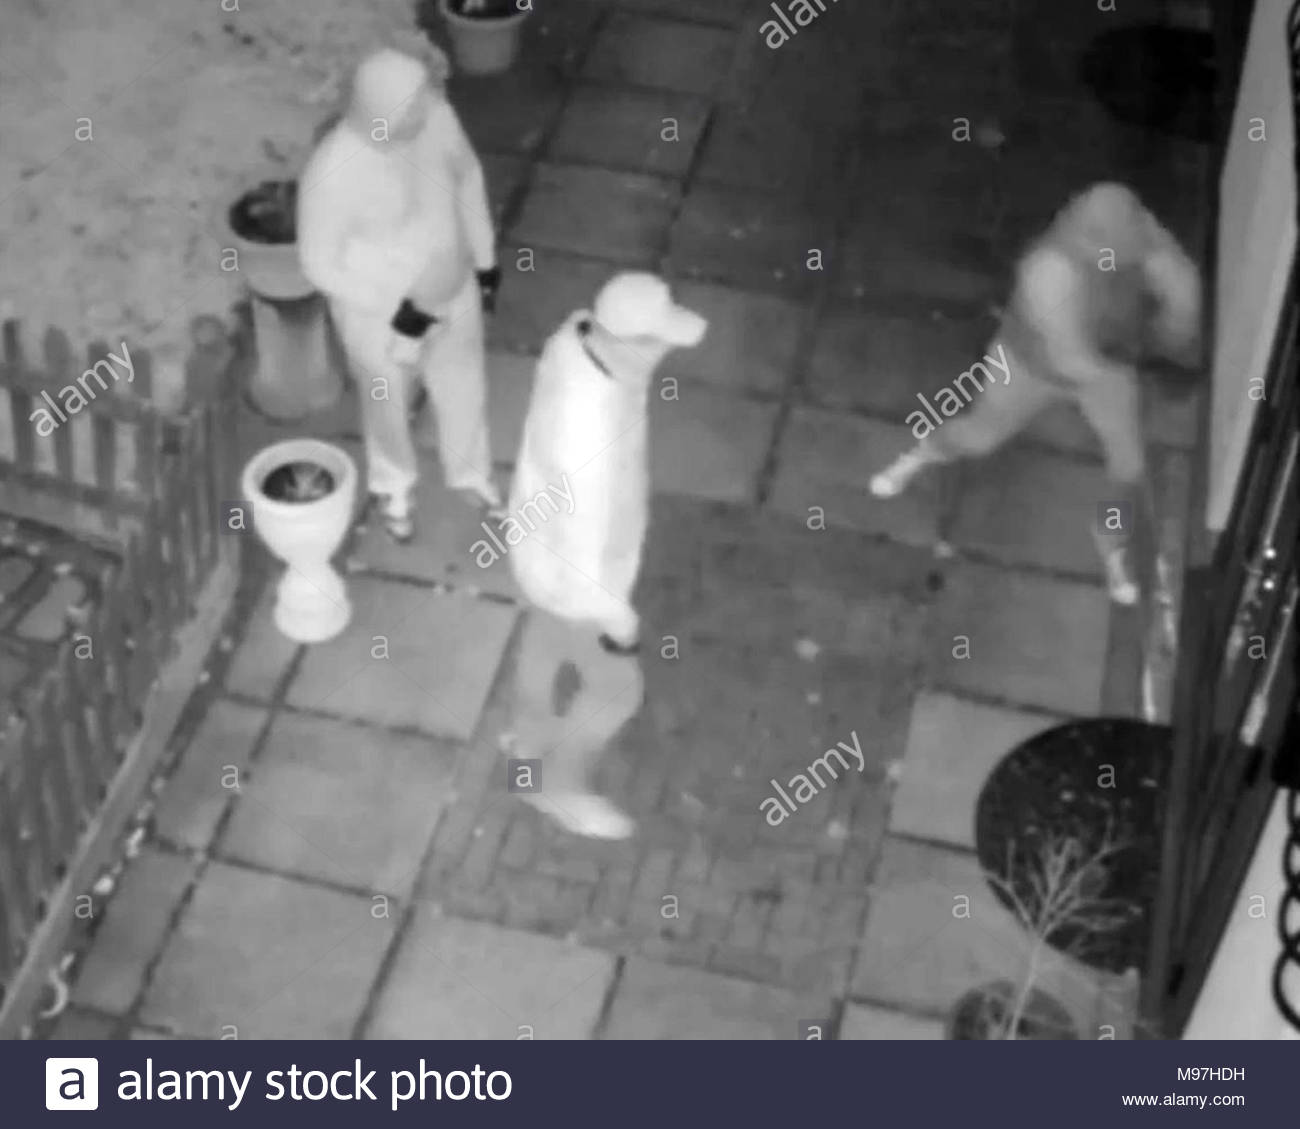 Handout video screengrab dated 05/03/18 issued by the Metropolitan Police of three of the four men who were wielding crowbars and hammers to force their way into a house in Chislehurst. Police are hunting for the gang as it is believed that they are behind a spate of burglaries in an affluent London suburb. Stock Photo